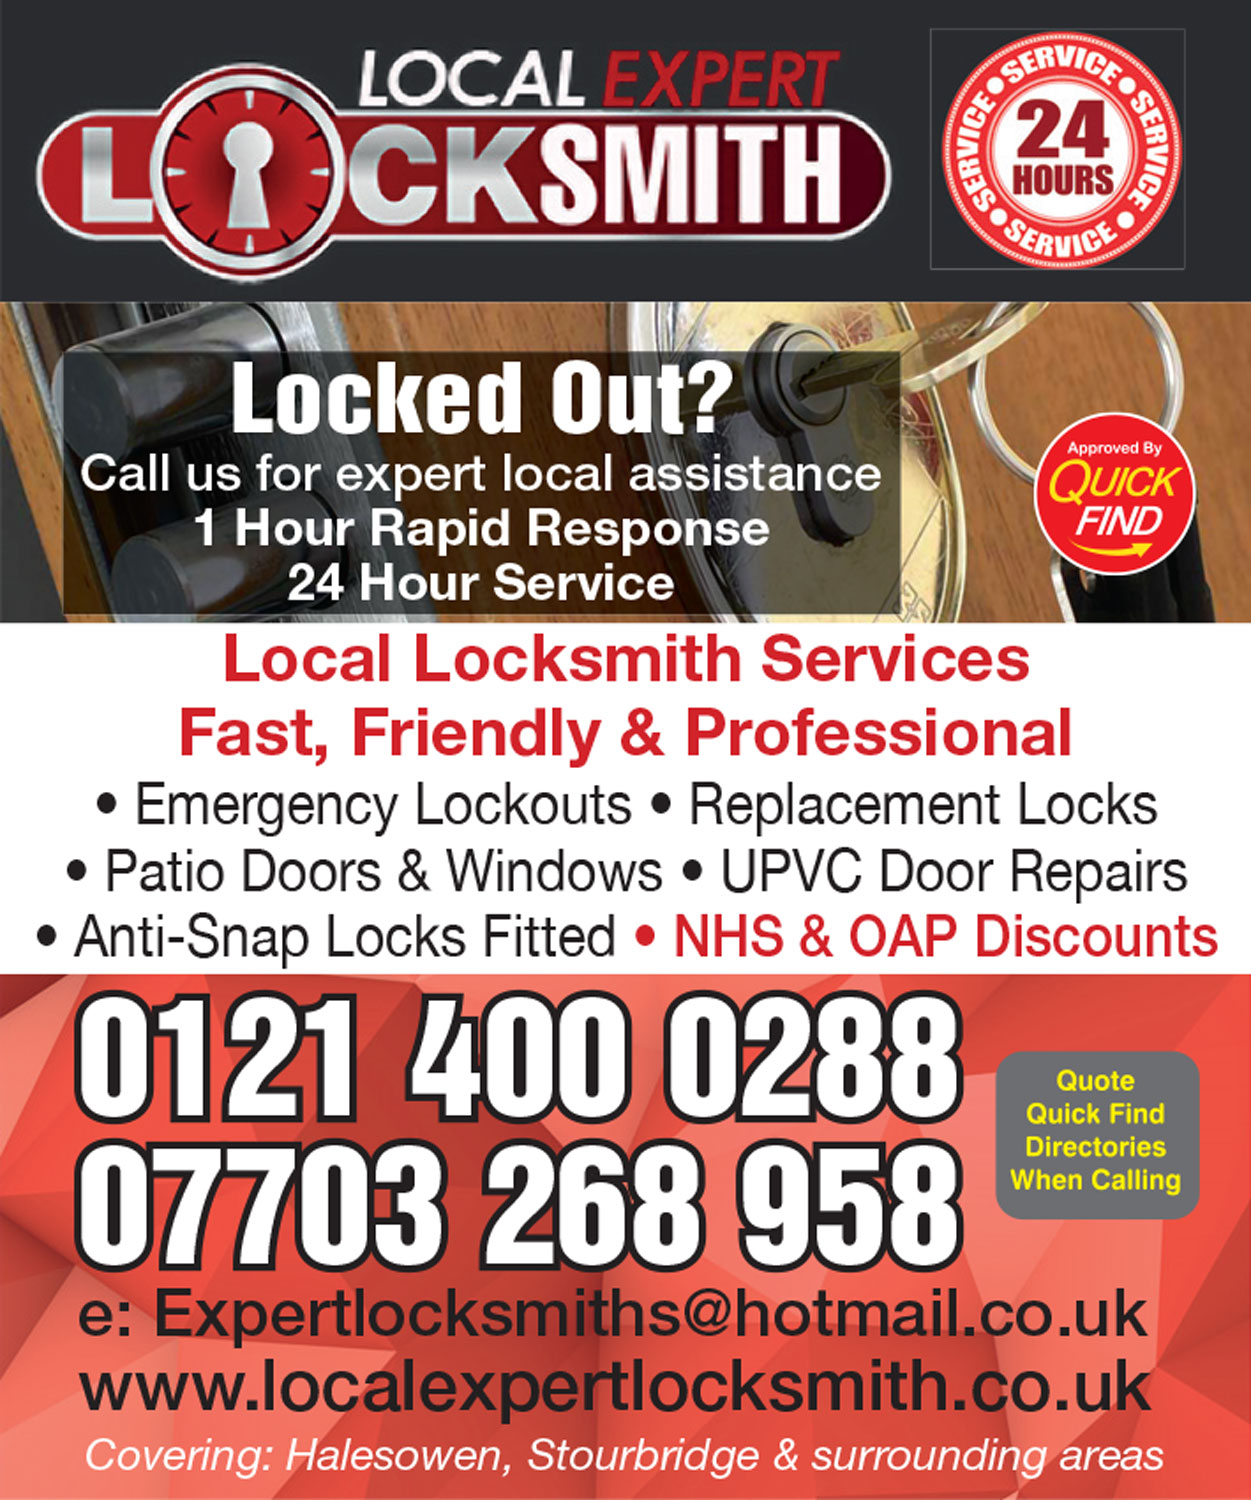 Local Expert Locksmith - Halesowen